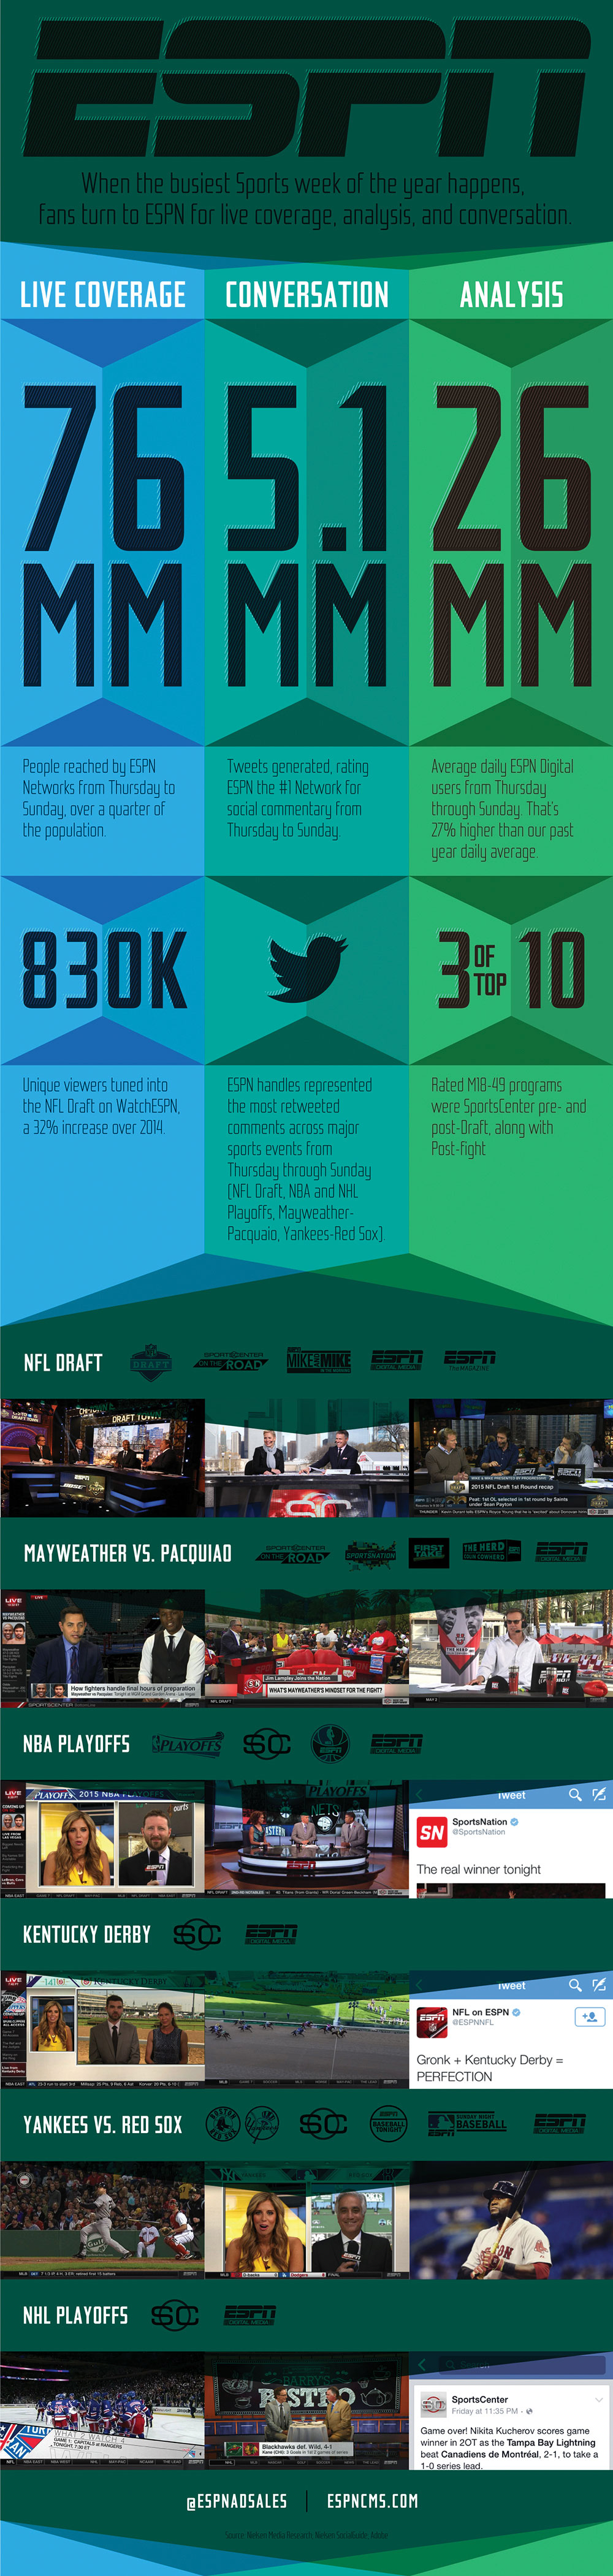 ESPNCMS Stream - ESPN Shines During Busy Sports Week